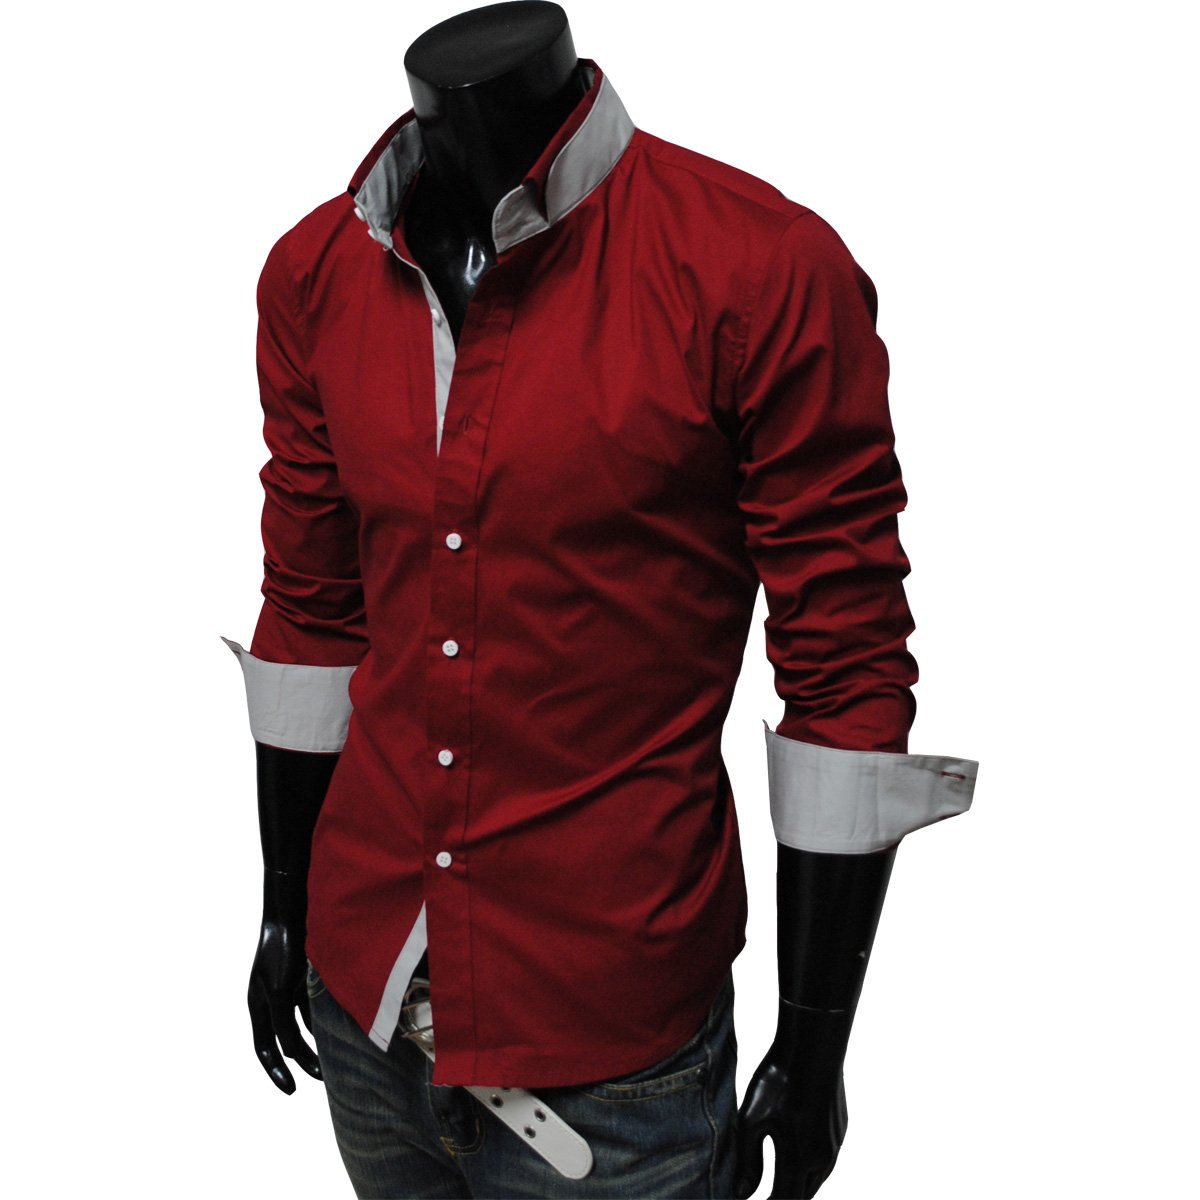 men 39 s top and shirt for sale custom made shirts provide